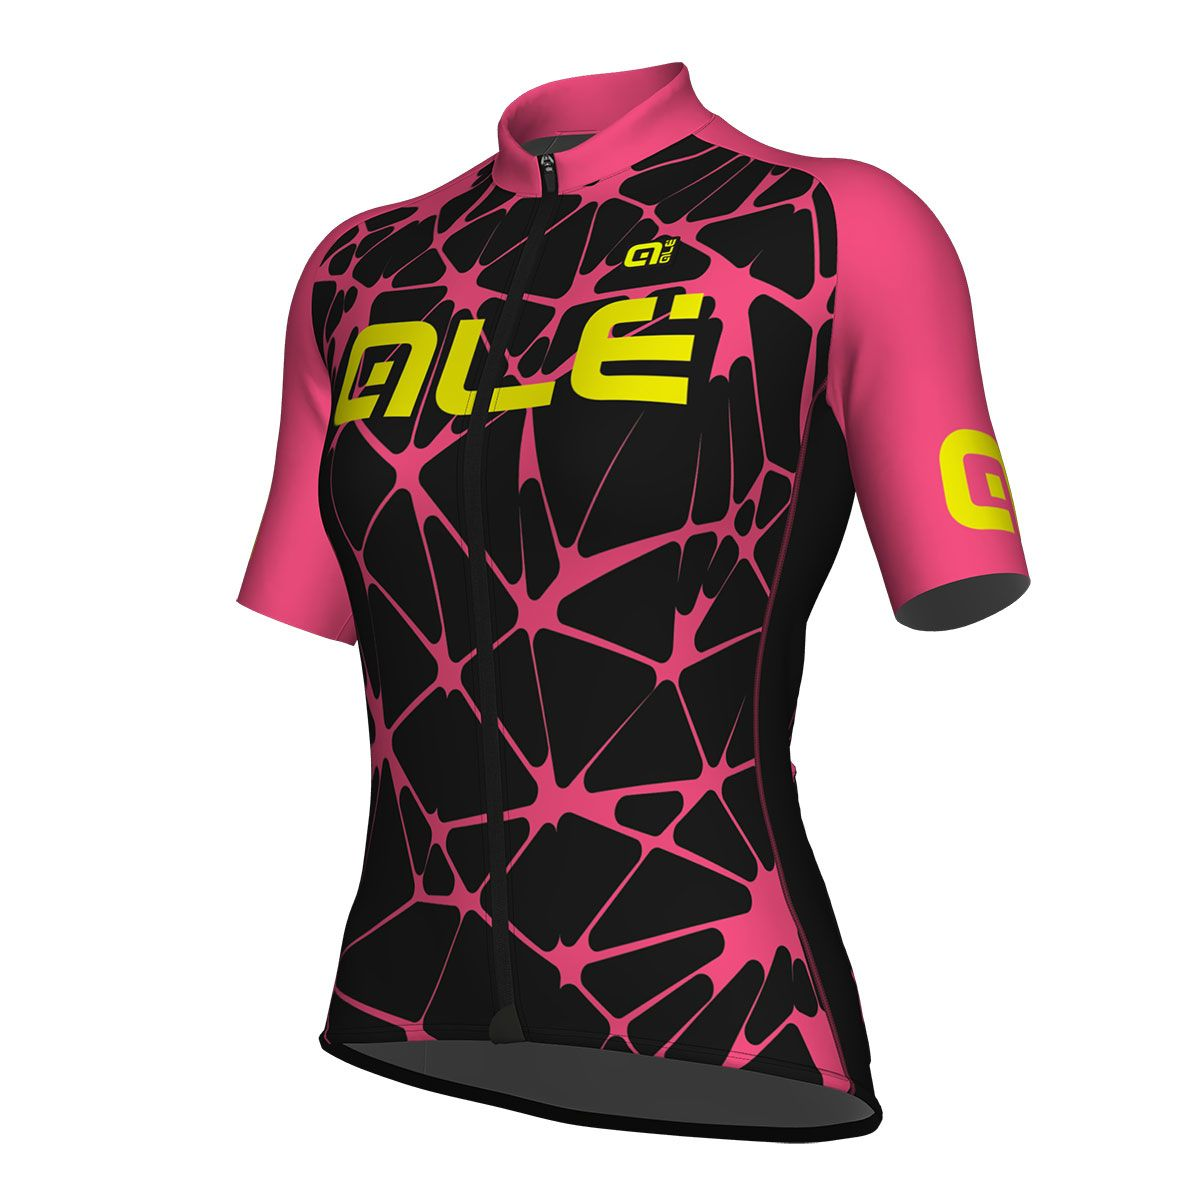 Maillot Ciclismo mujer Ale Solid Cracle Negro rosa